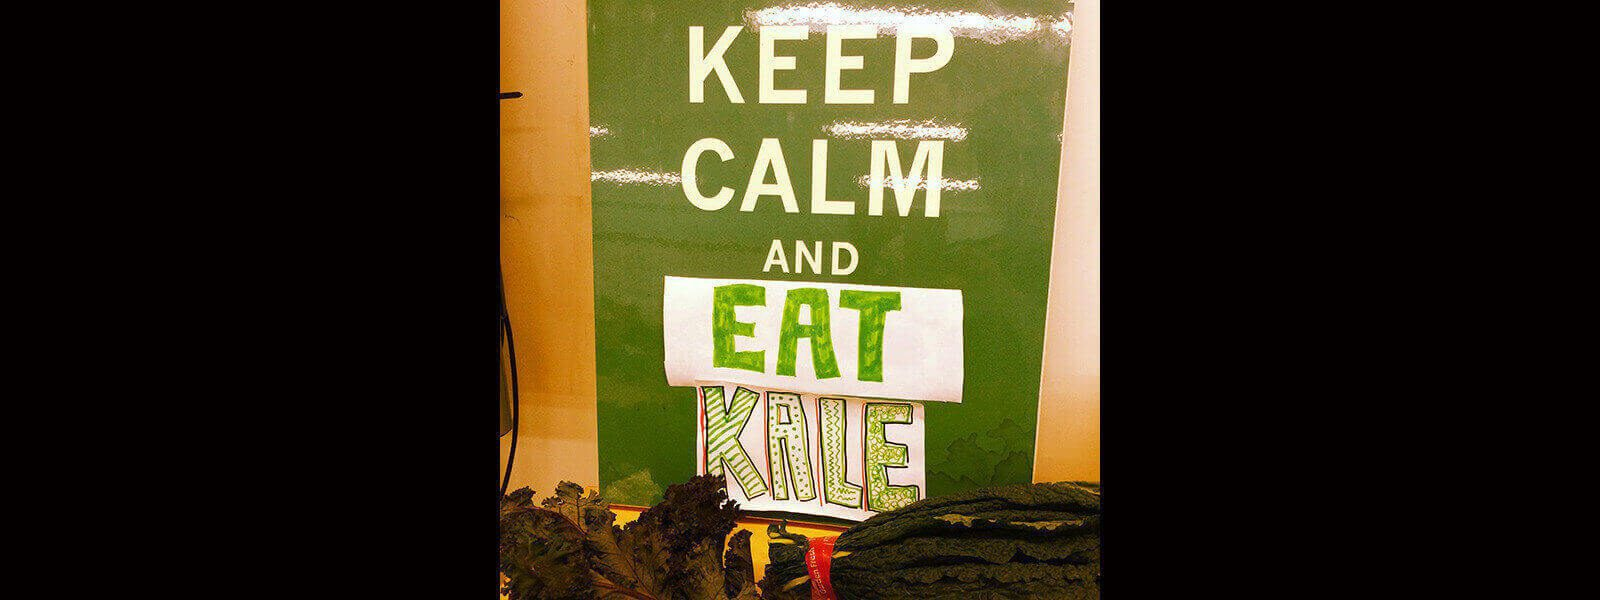 Keep-Calm-and-Eat-Kale